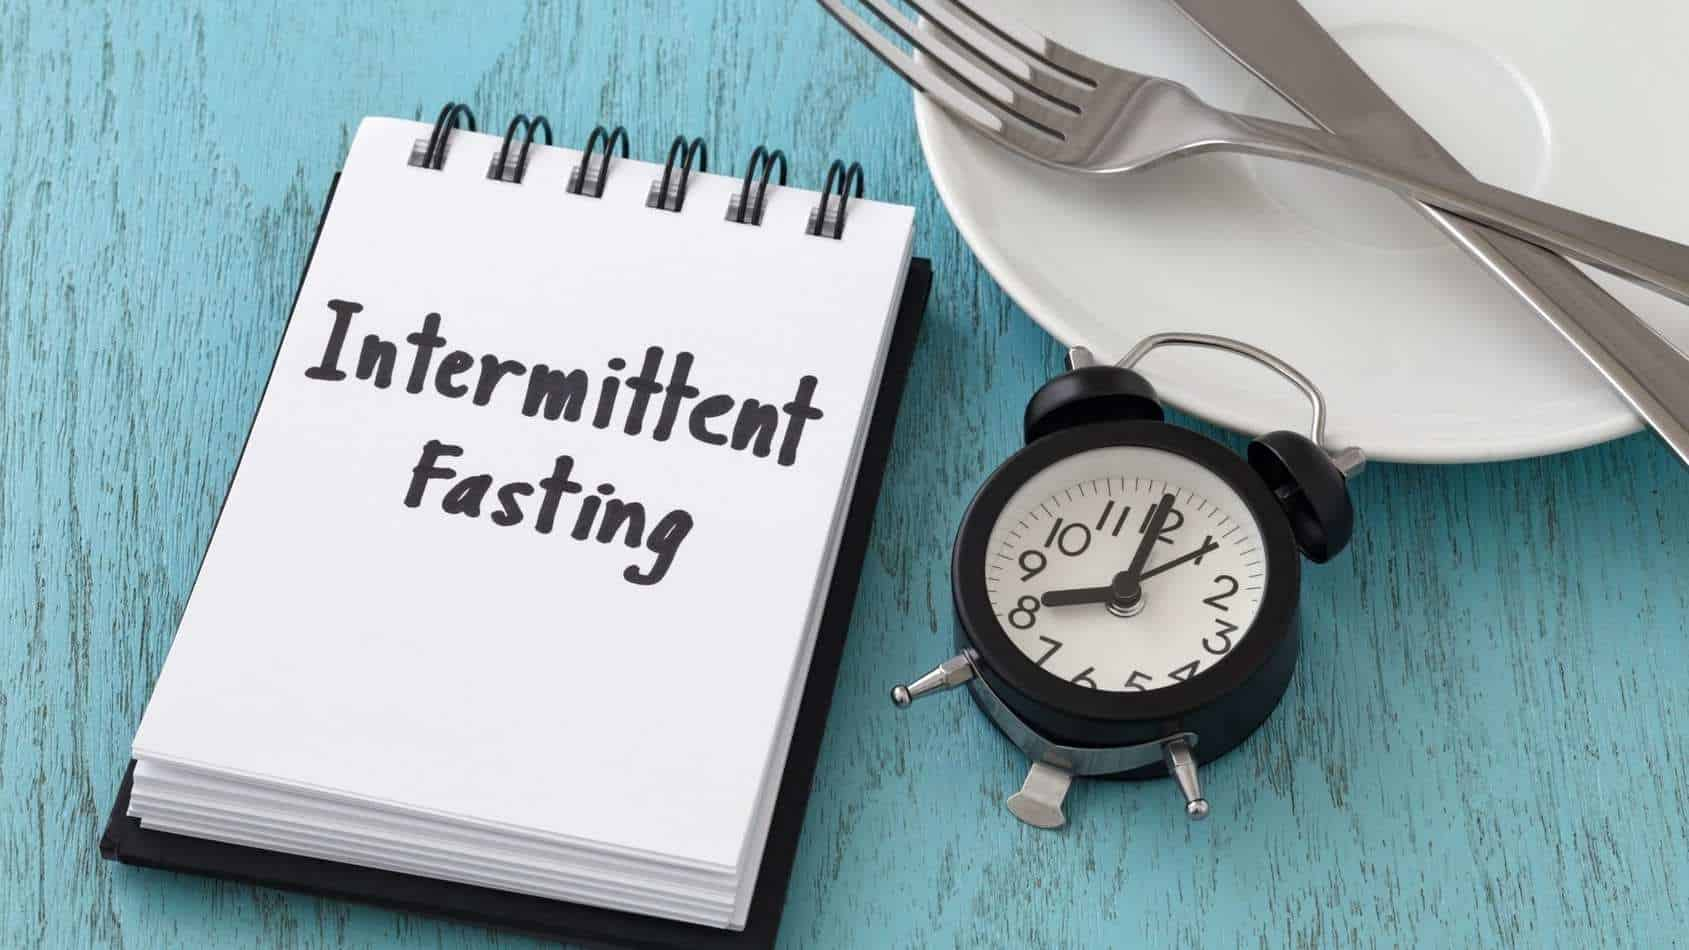 intermittent fasting 16:8 can benefit your health and wellbeing and is an affective way to lose weight